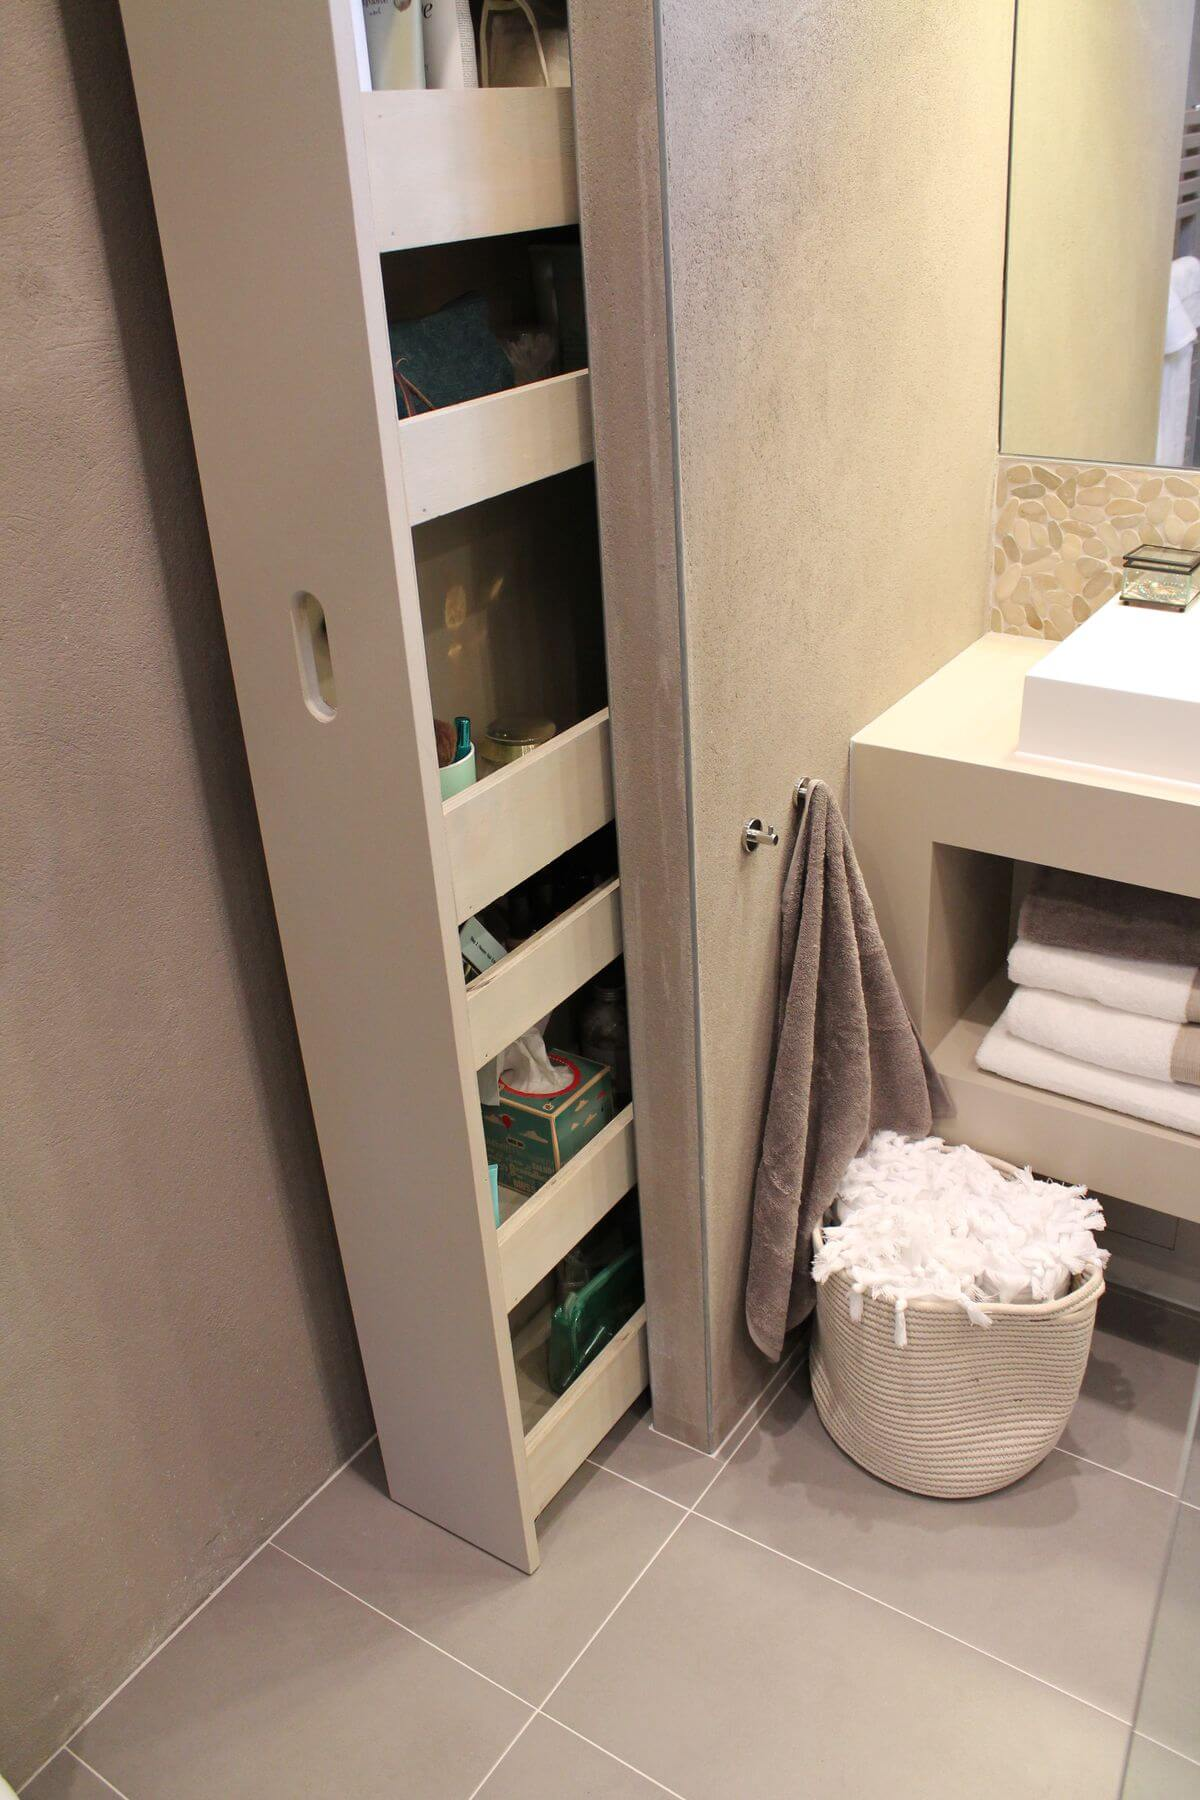 Sliding Storage Space for Stowing Bathroom Necessities